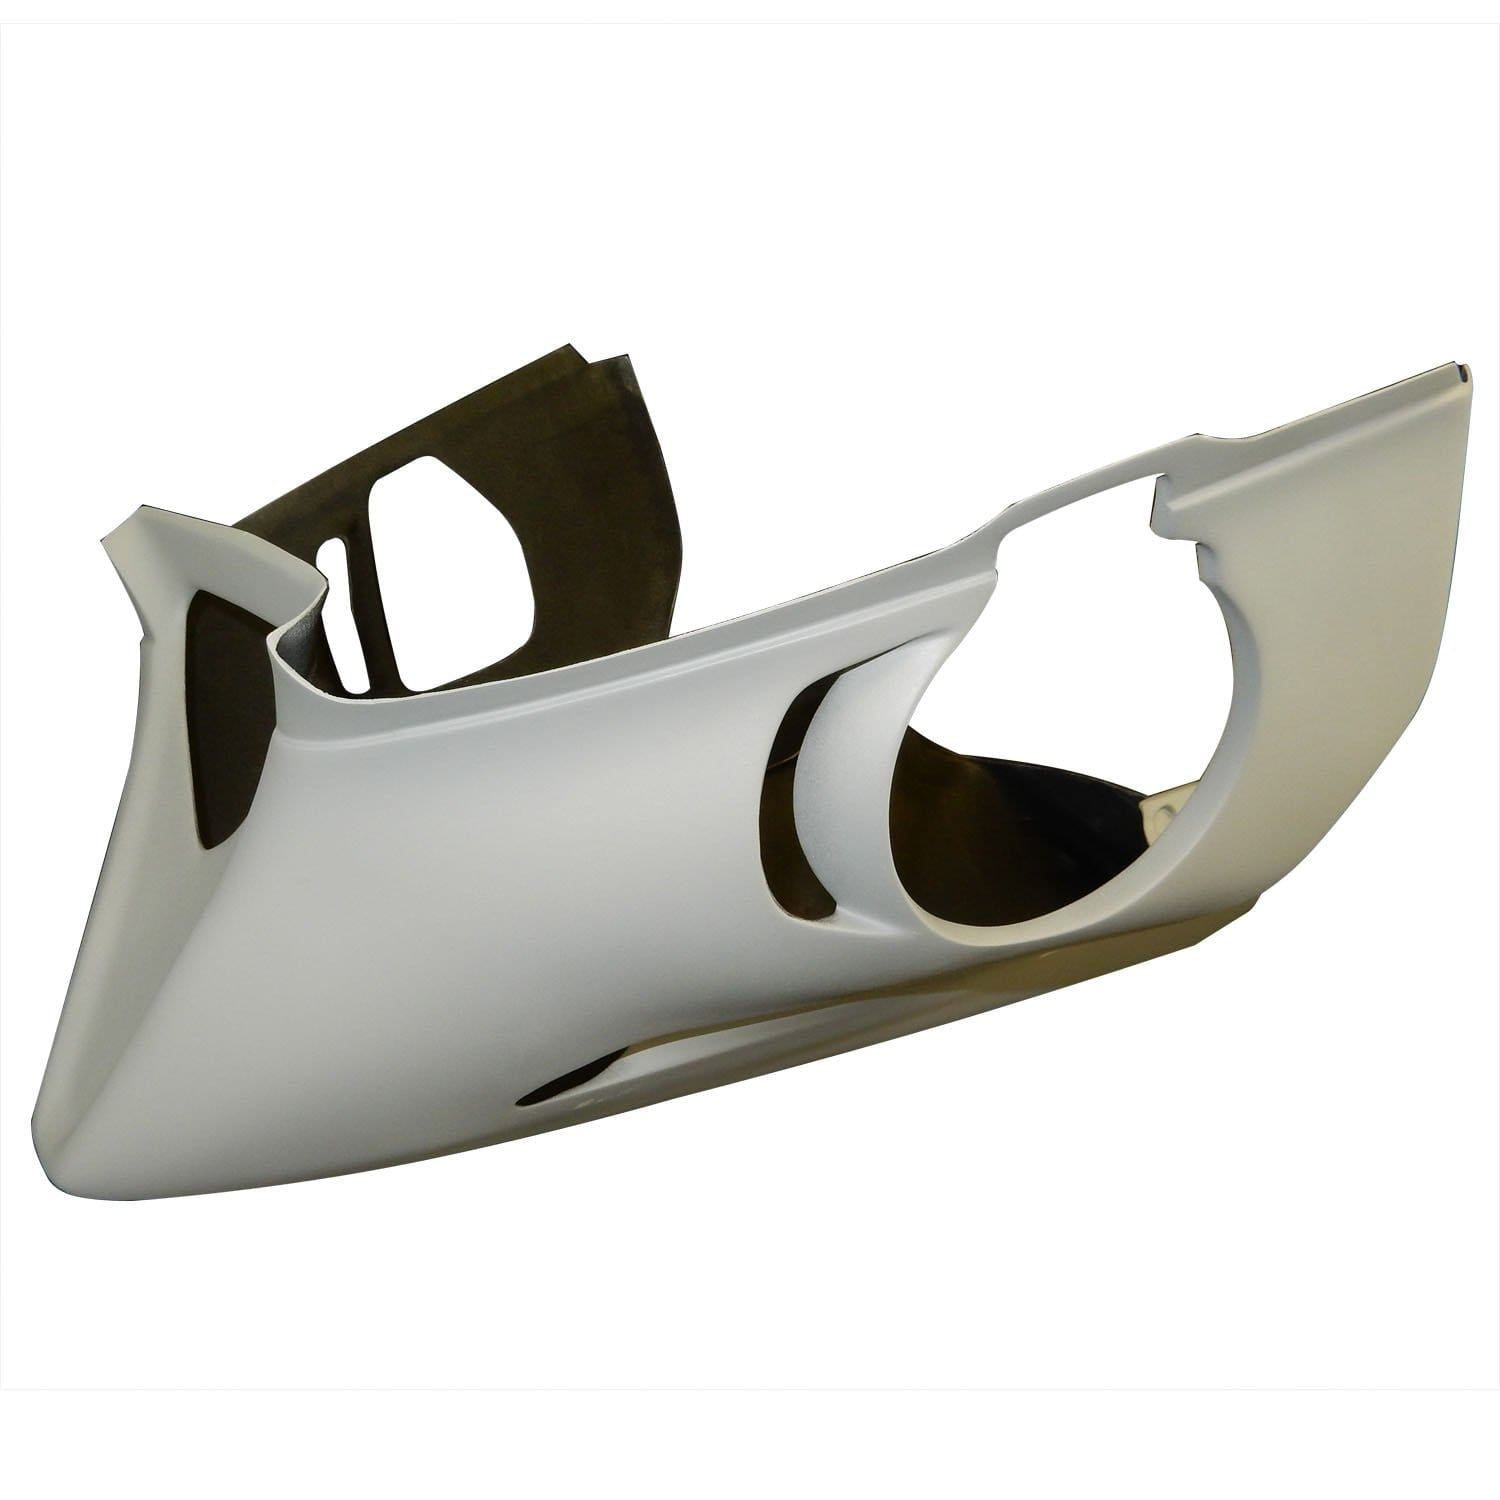 1999-2002 Yam R6 Lower Fairing - Pro Series - Woodcraft Technologies - Motorcycle Parts